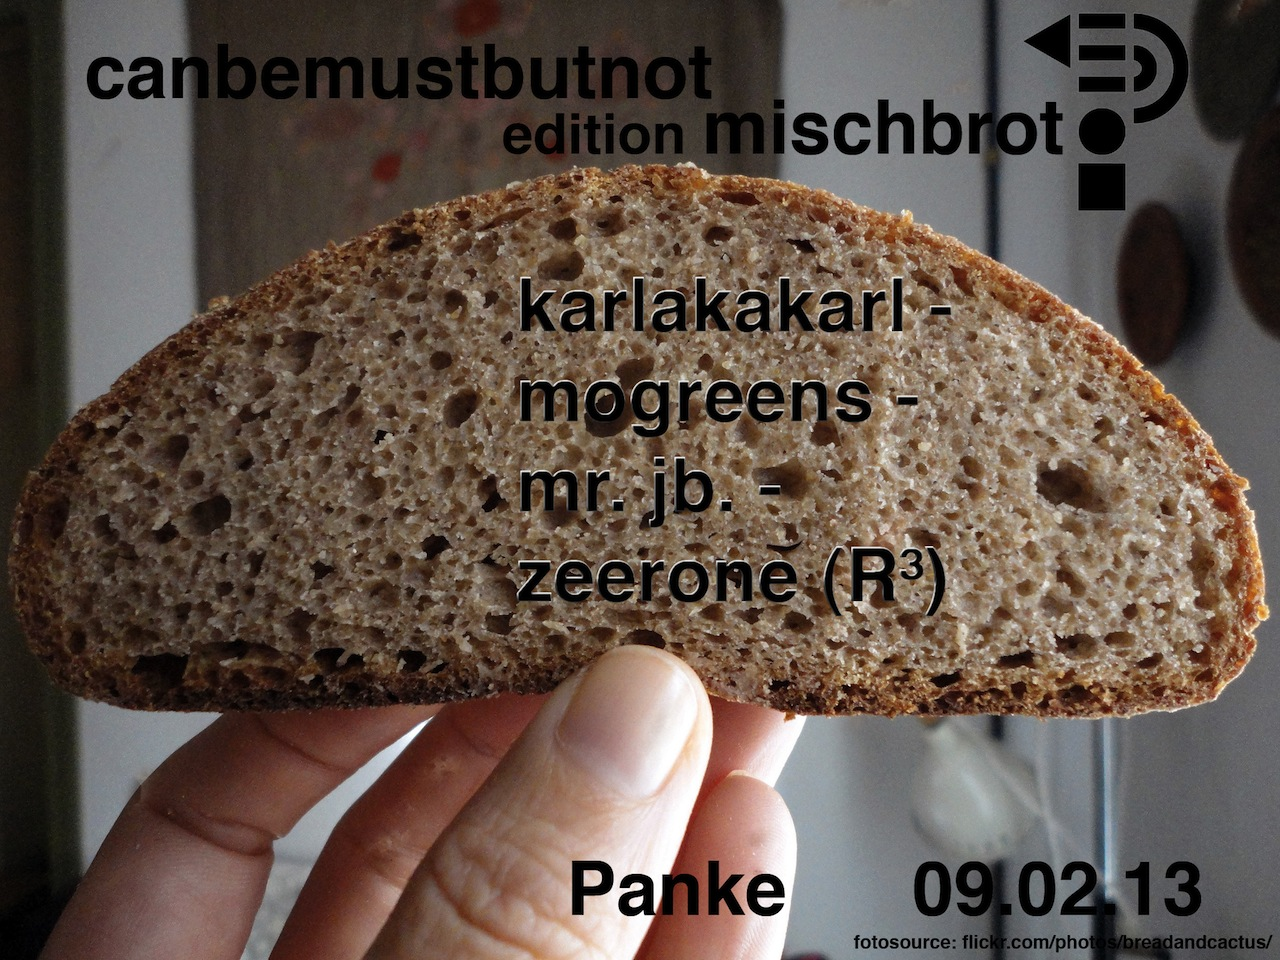 canbemustbutnot – mischbrot edition